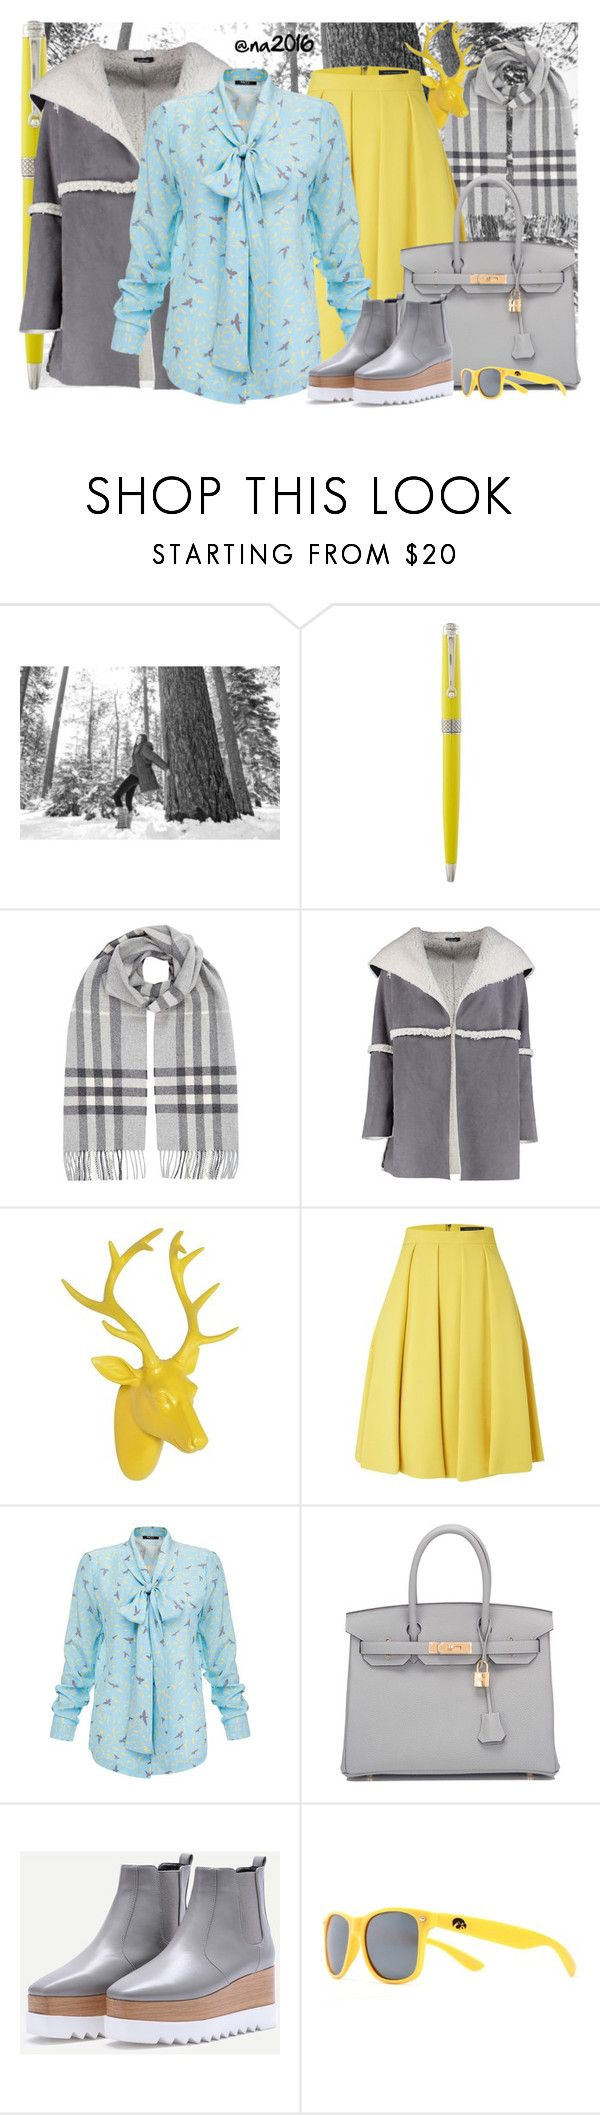 """Gray !"" by menina-ana ❤ liked on Polyvore featuring SOREL, Montegrappa, Burberry, Boohoo, French Connection, Raoul, Hermès and Society43"